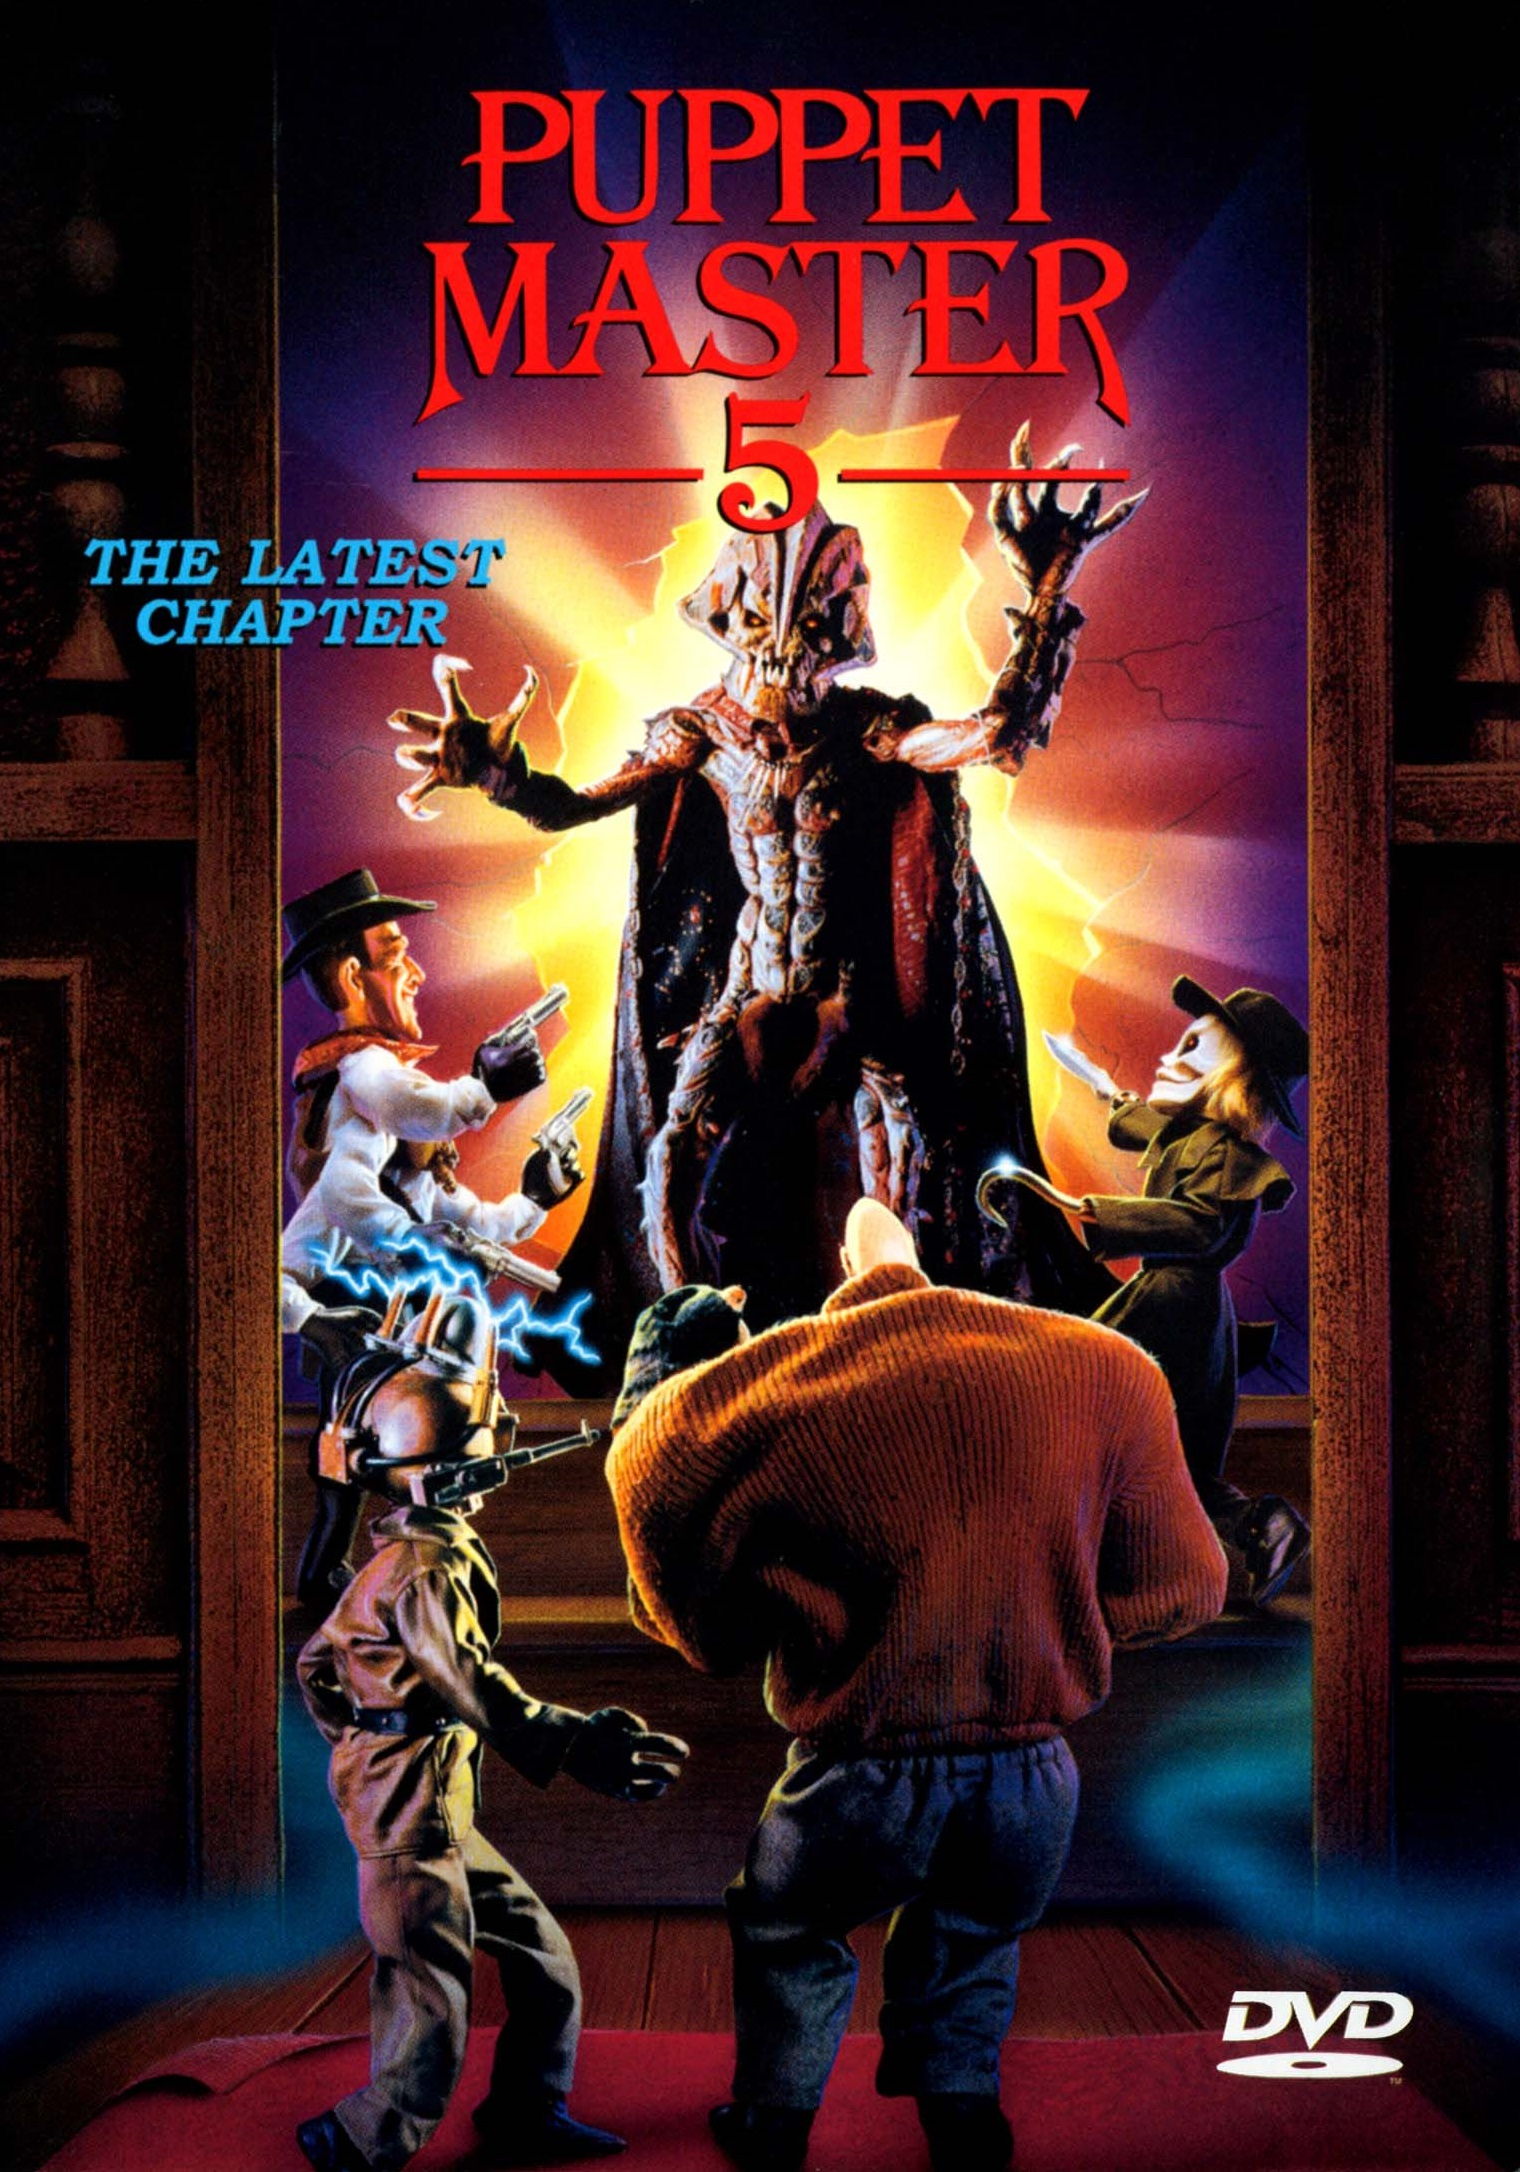 Puppet Master 4 streaming full movie with english subtitles